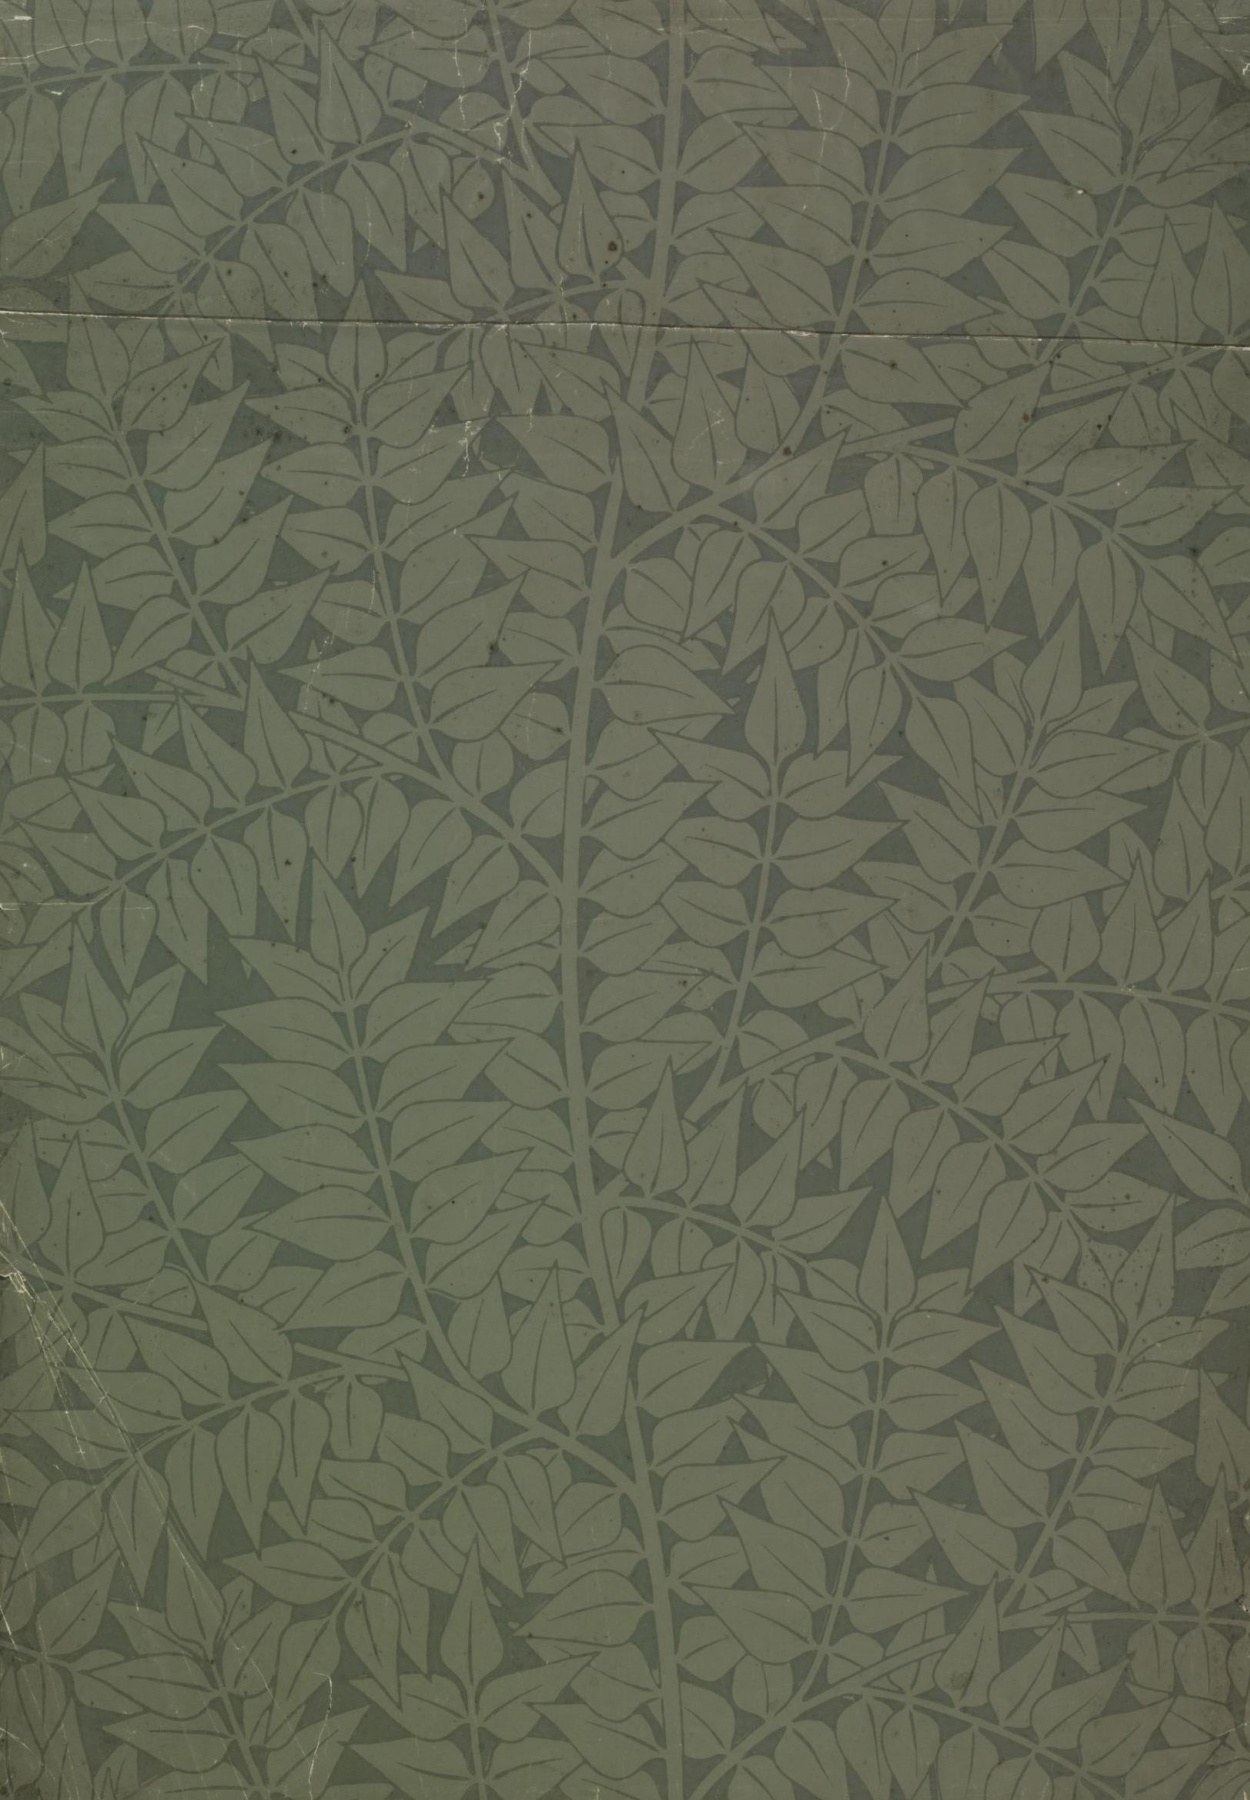 William Morris. Branch